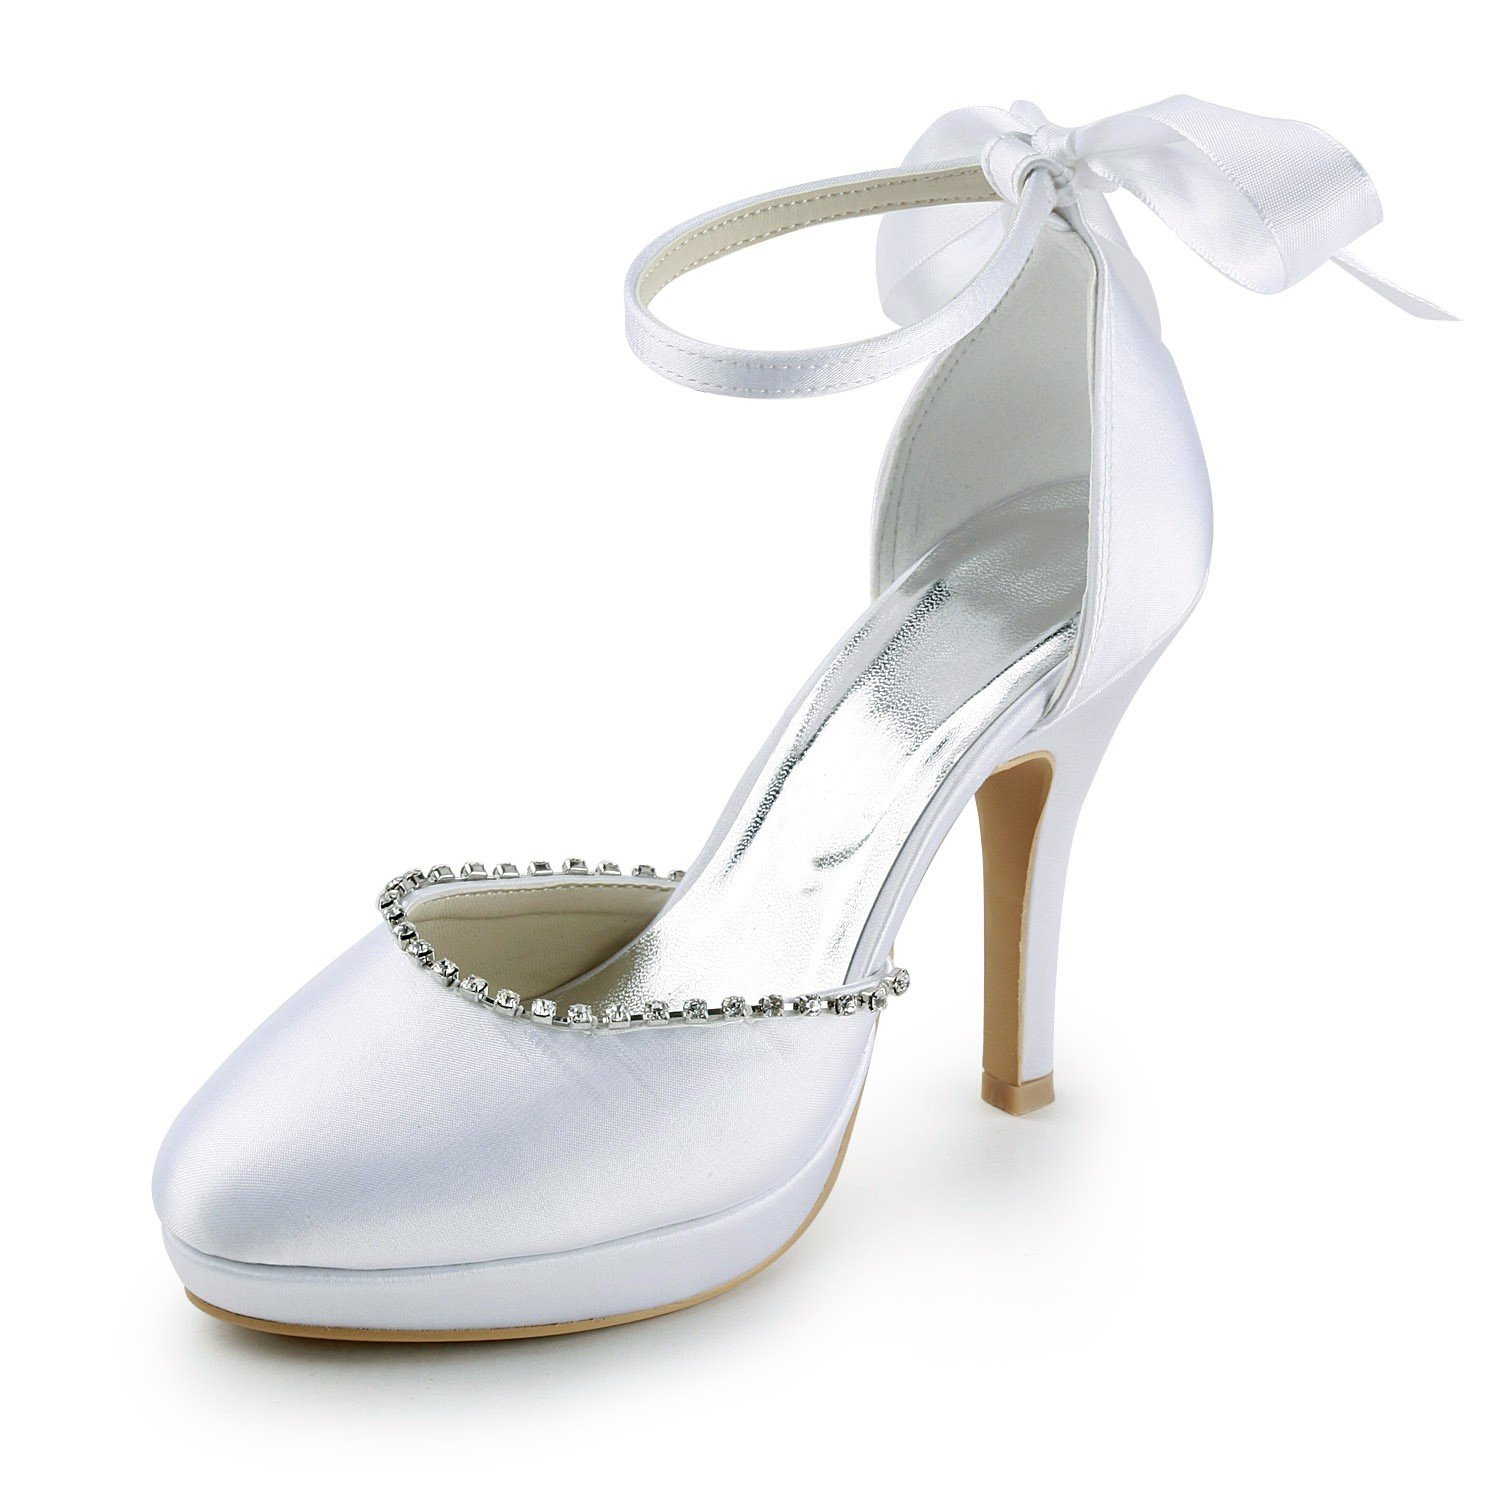 Brides will also find wide width wedding shoes, blue wedding shoes, ivory wedding shoes, purple wedding shoes, and many other colors. Whether the bride is looking for a flat ballerina bridal shoe or a four-inch platform wedding shoe, she will find everything at cripatsur.ga